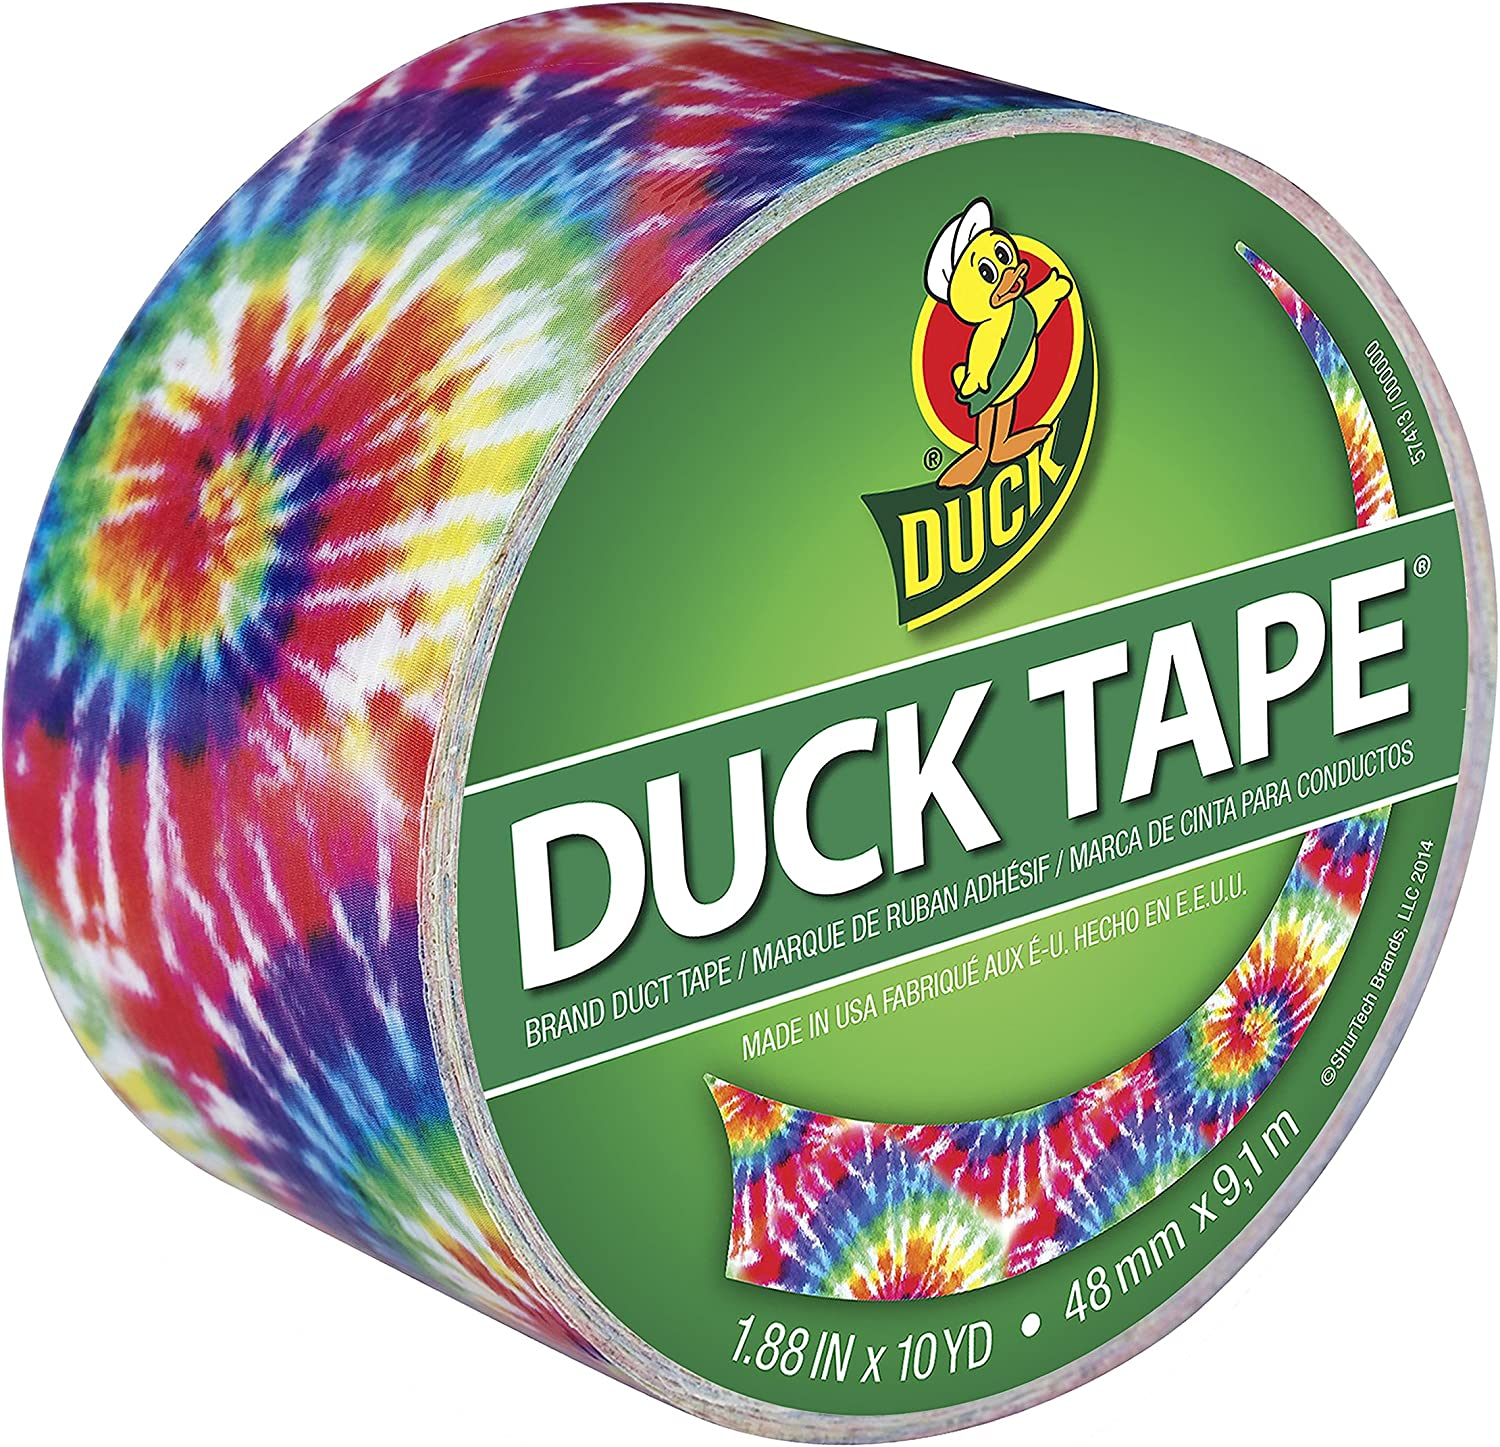 Duck Brand 283268 Love Tie Dye Printed Duct Tape, 1.88 Inches x 10 Yards, Single Roll